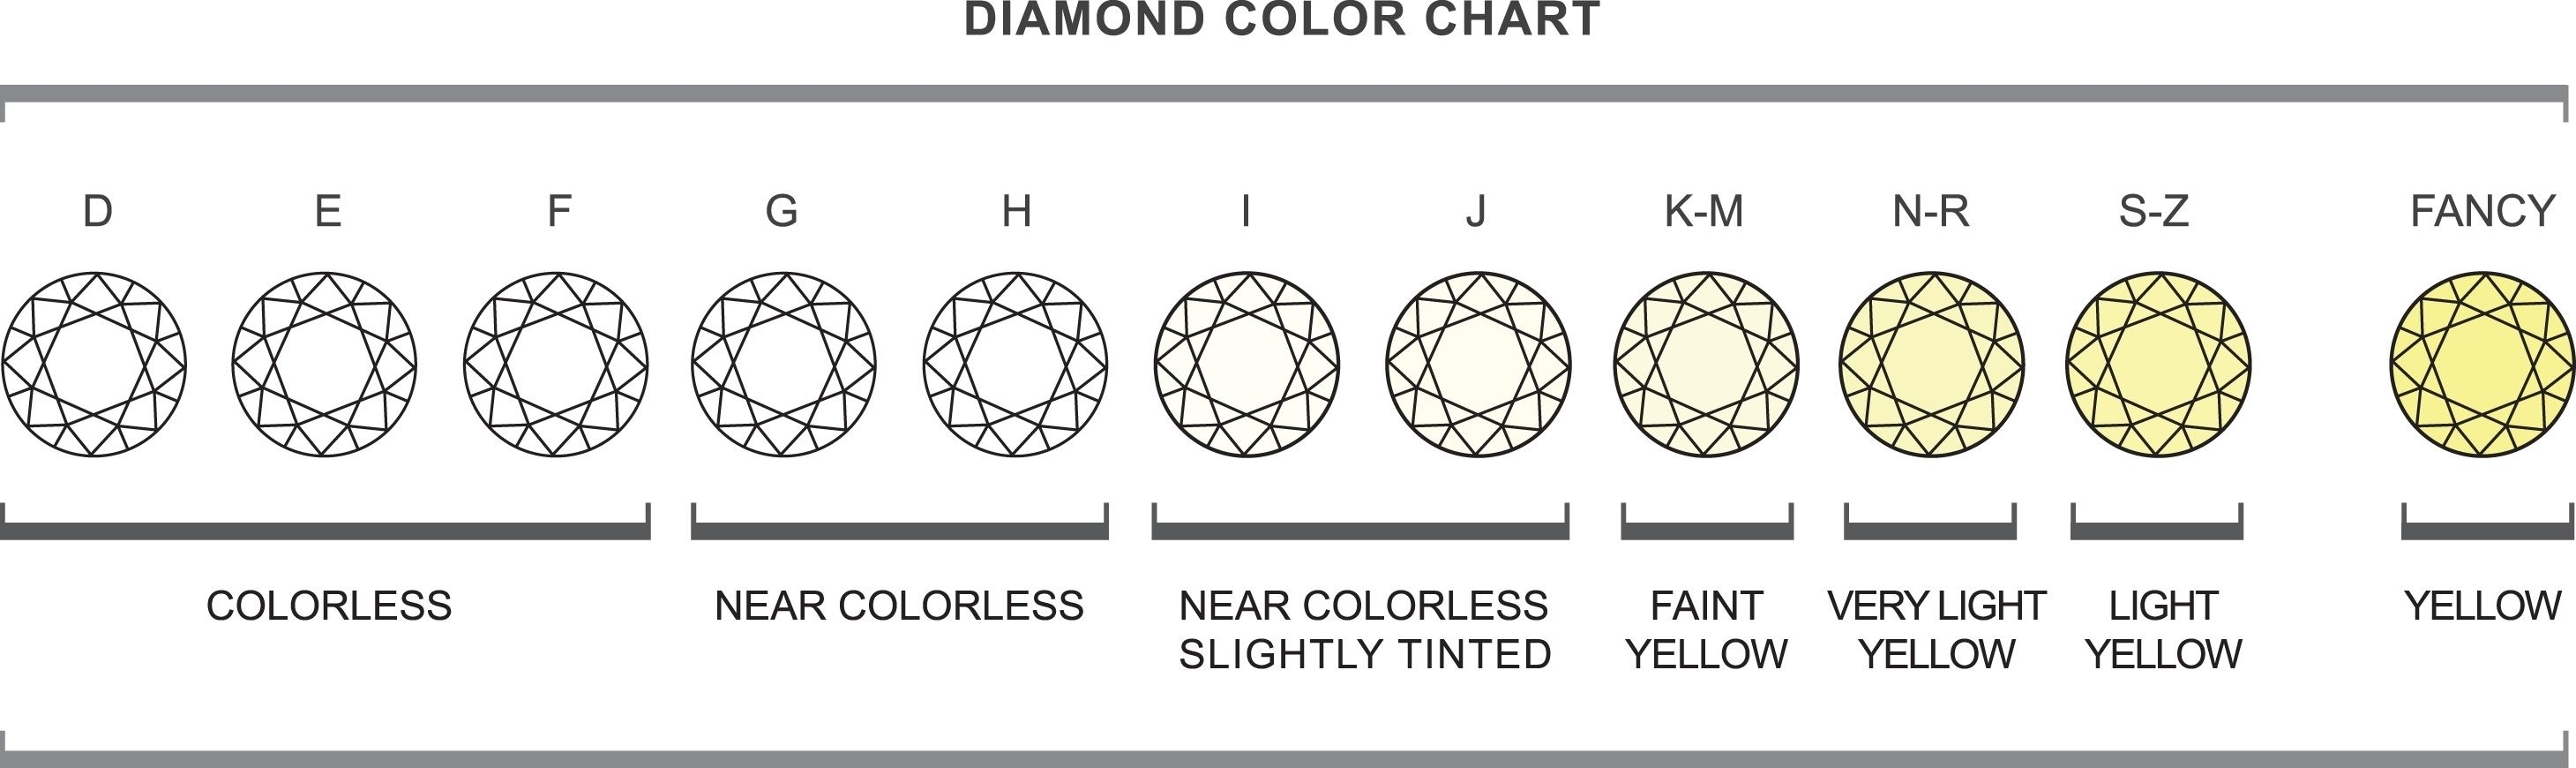 Diamond jewelry color chart ring pinterest diamond diamond